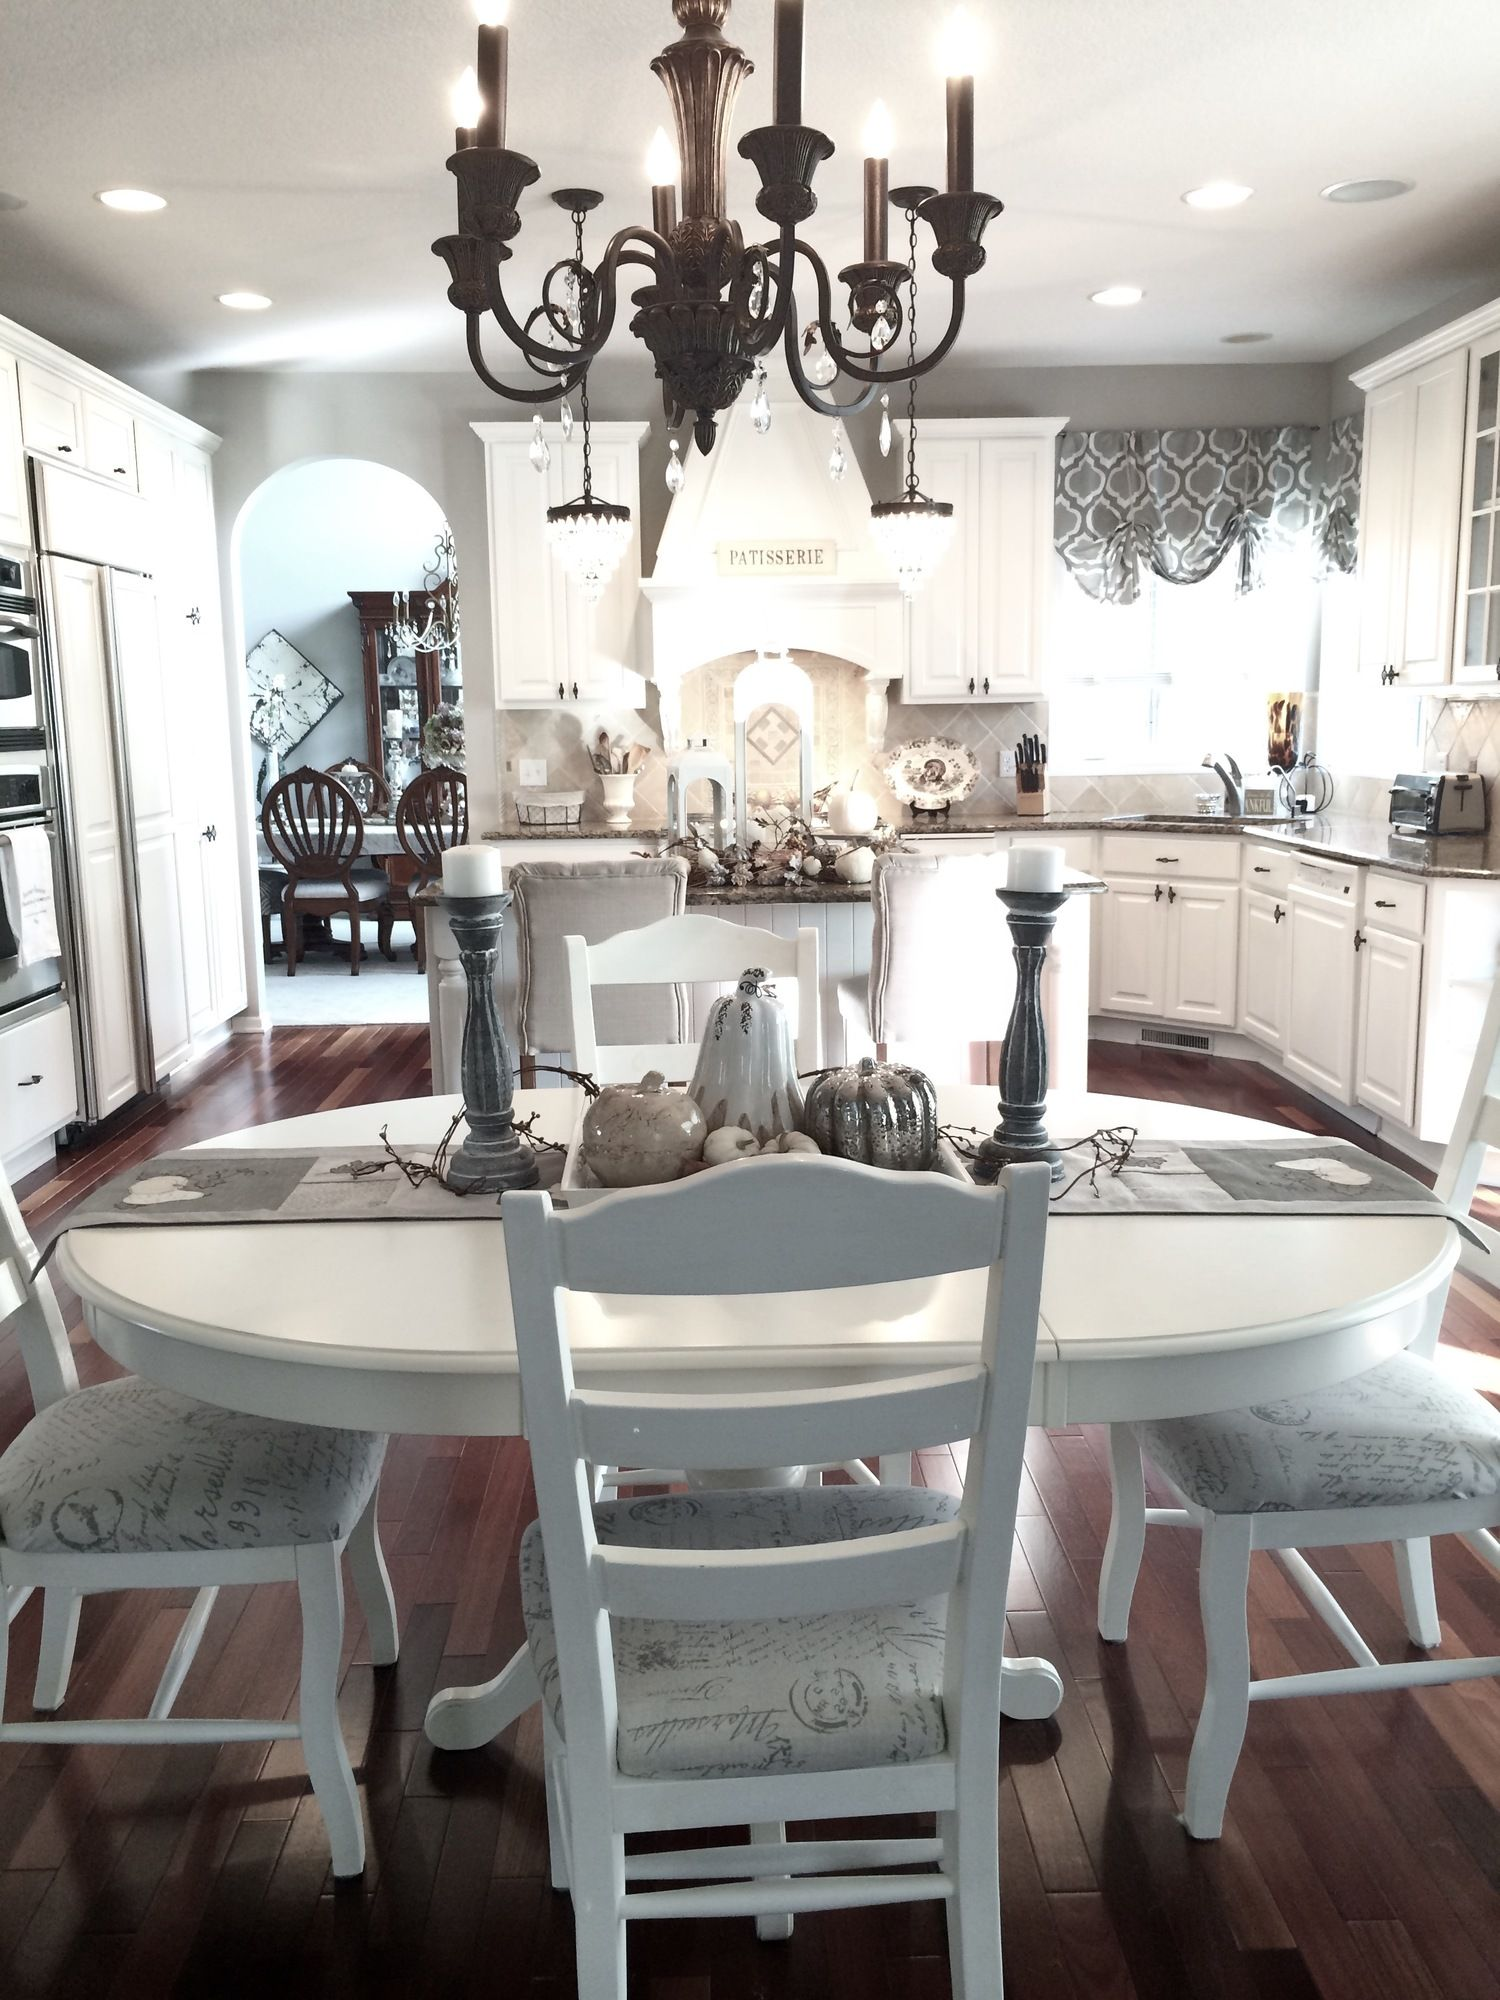 Best French Country Goes Upscale In This Kitchen With White 400 x 300